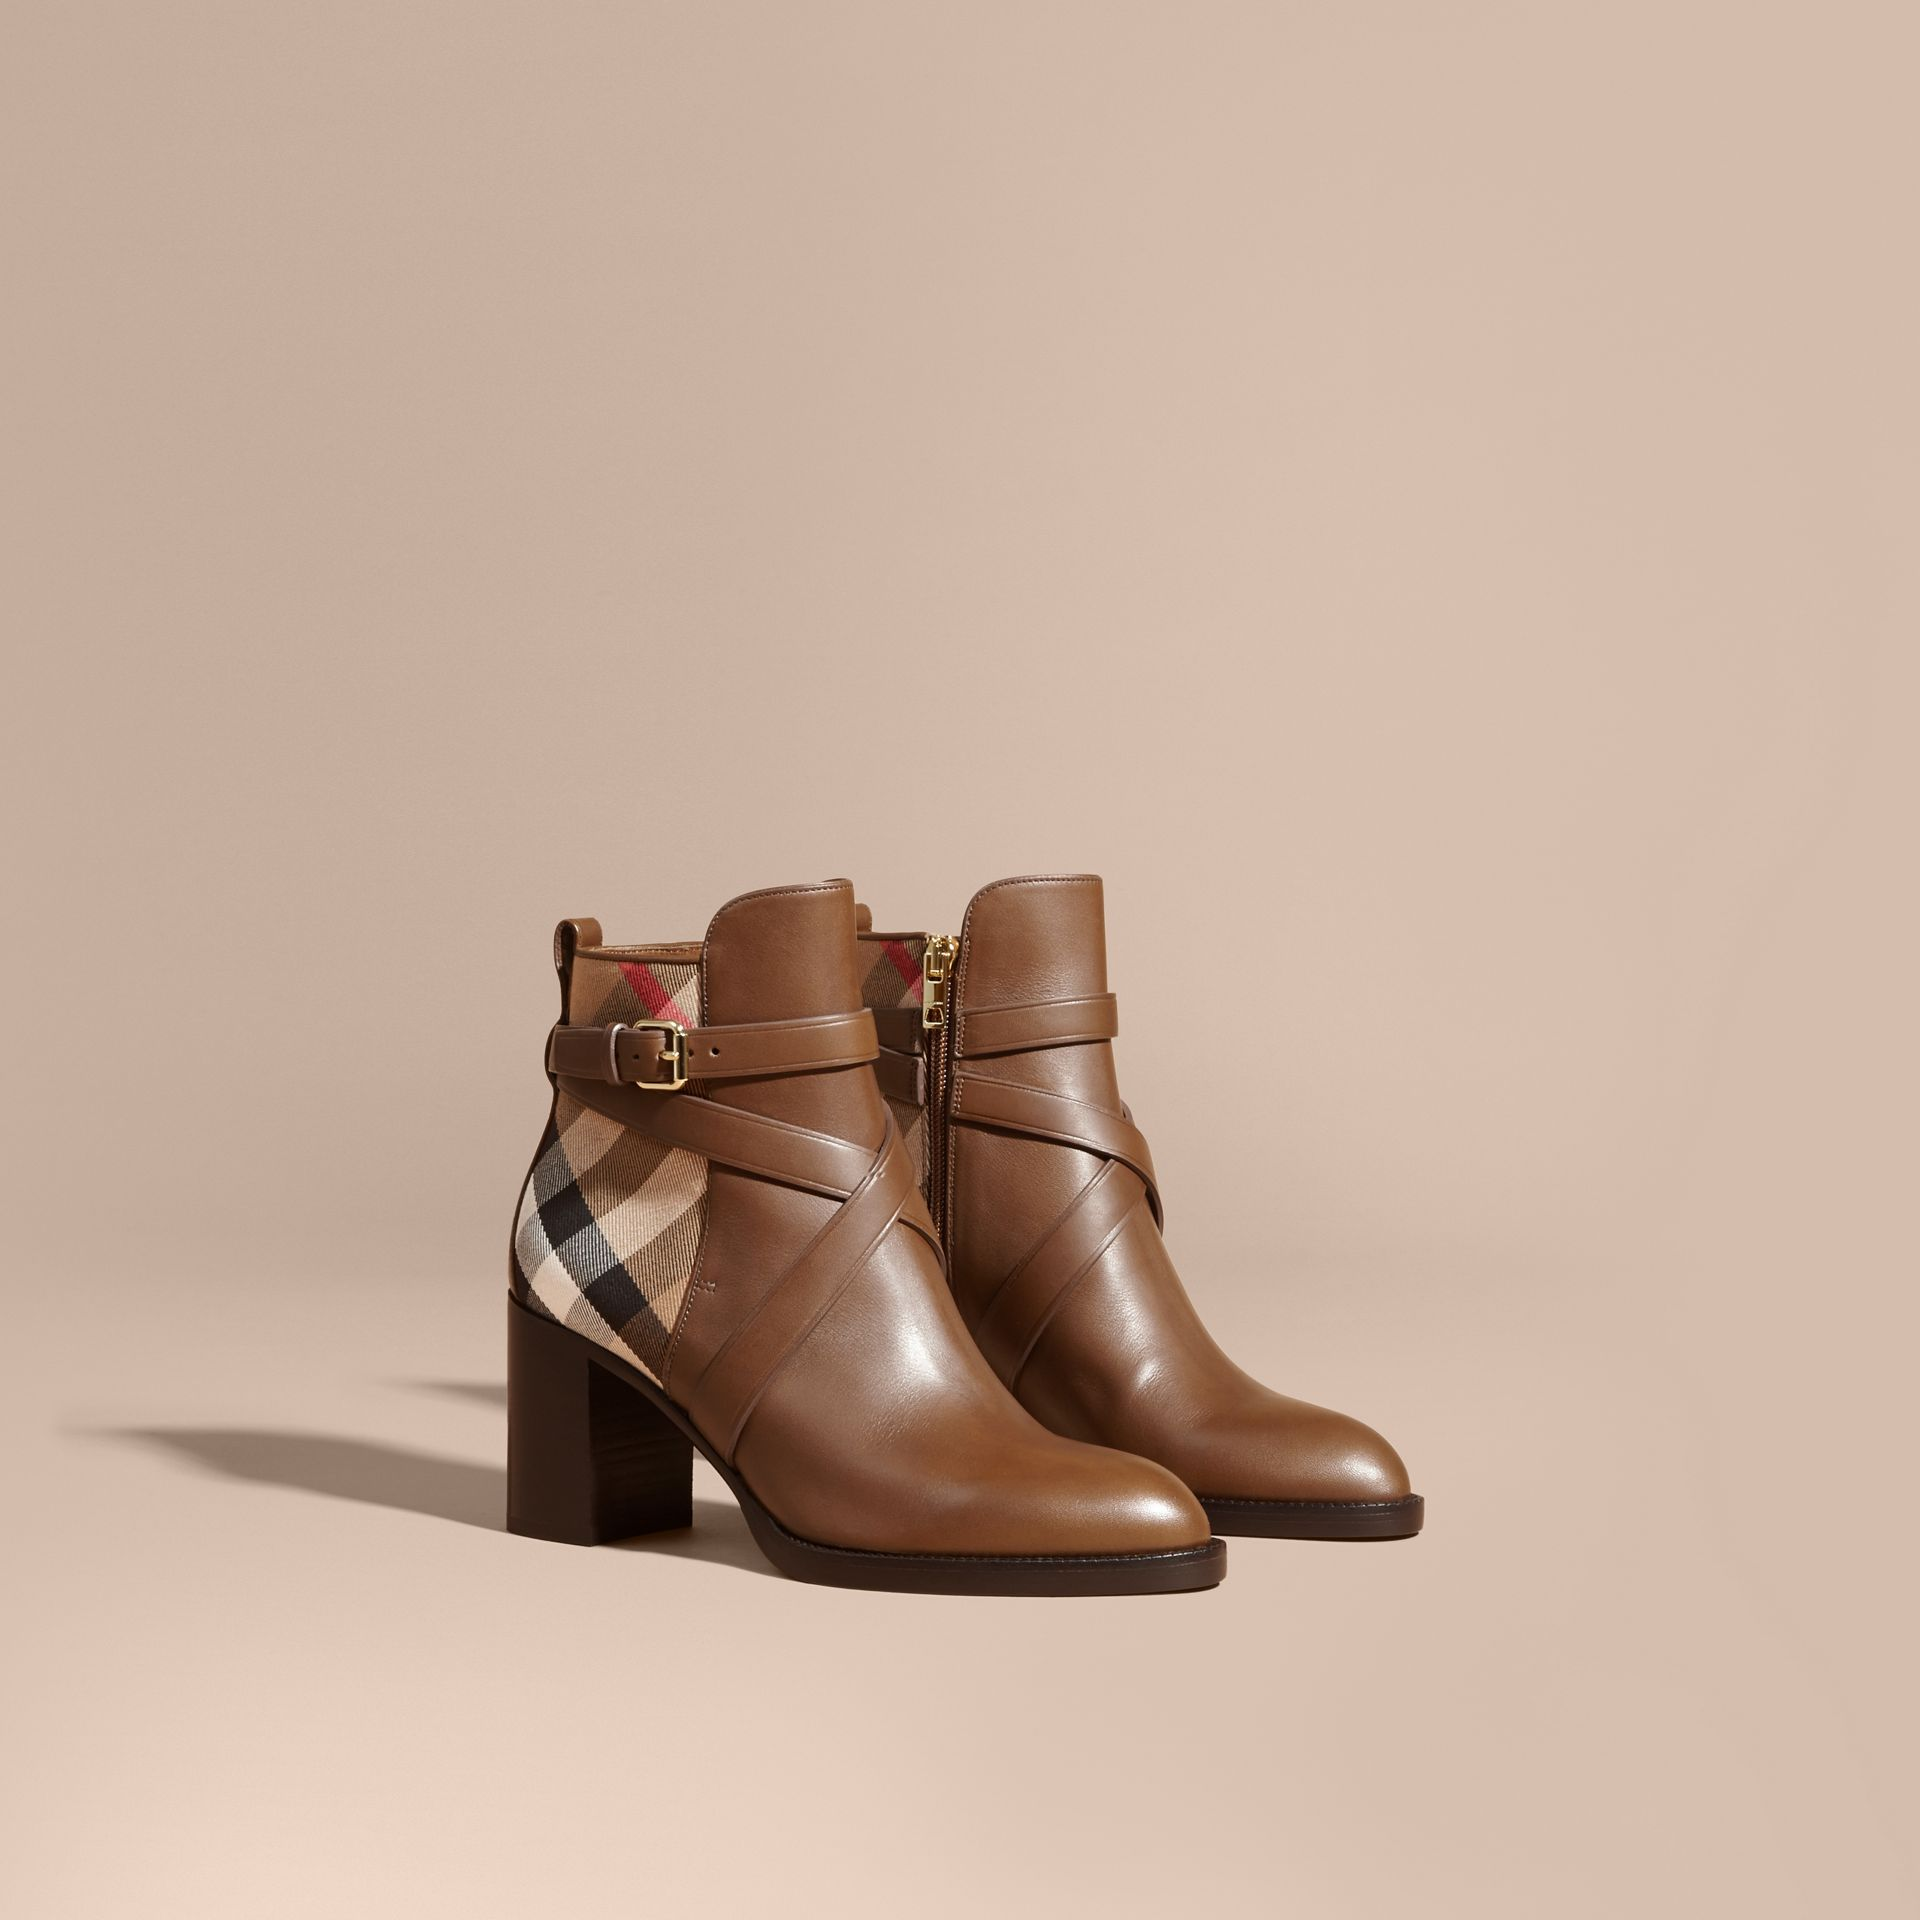 House Check and Leather Ankle Boots Bright Camel - gallery image 1